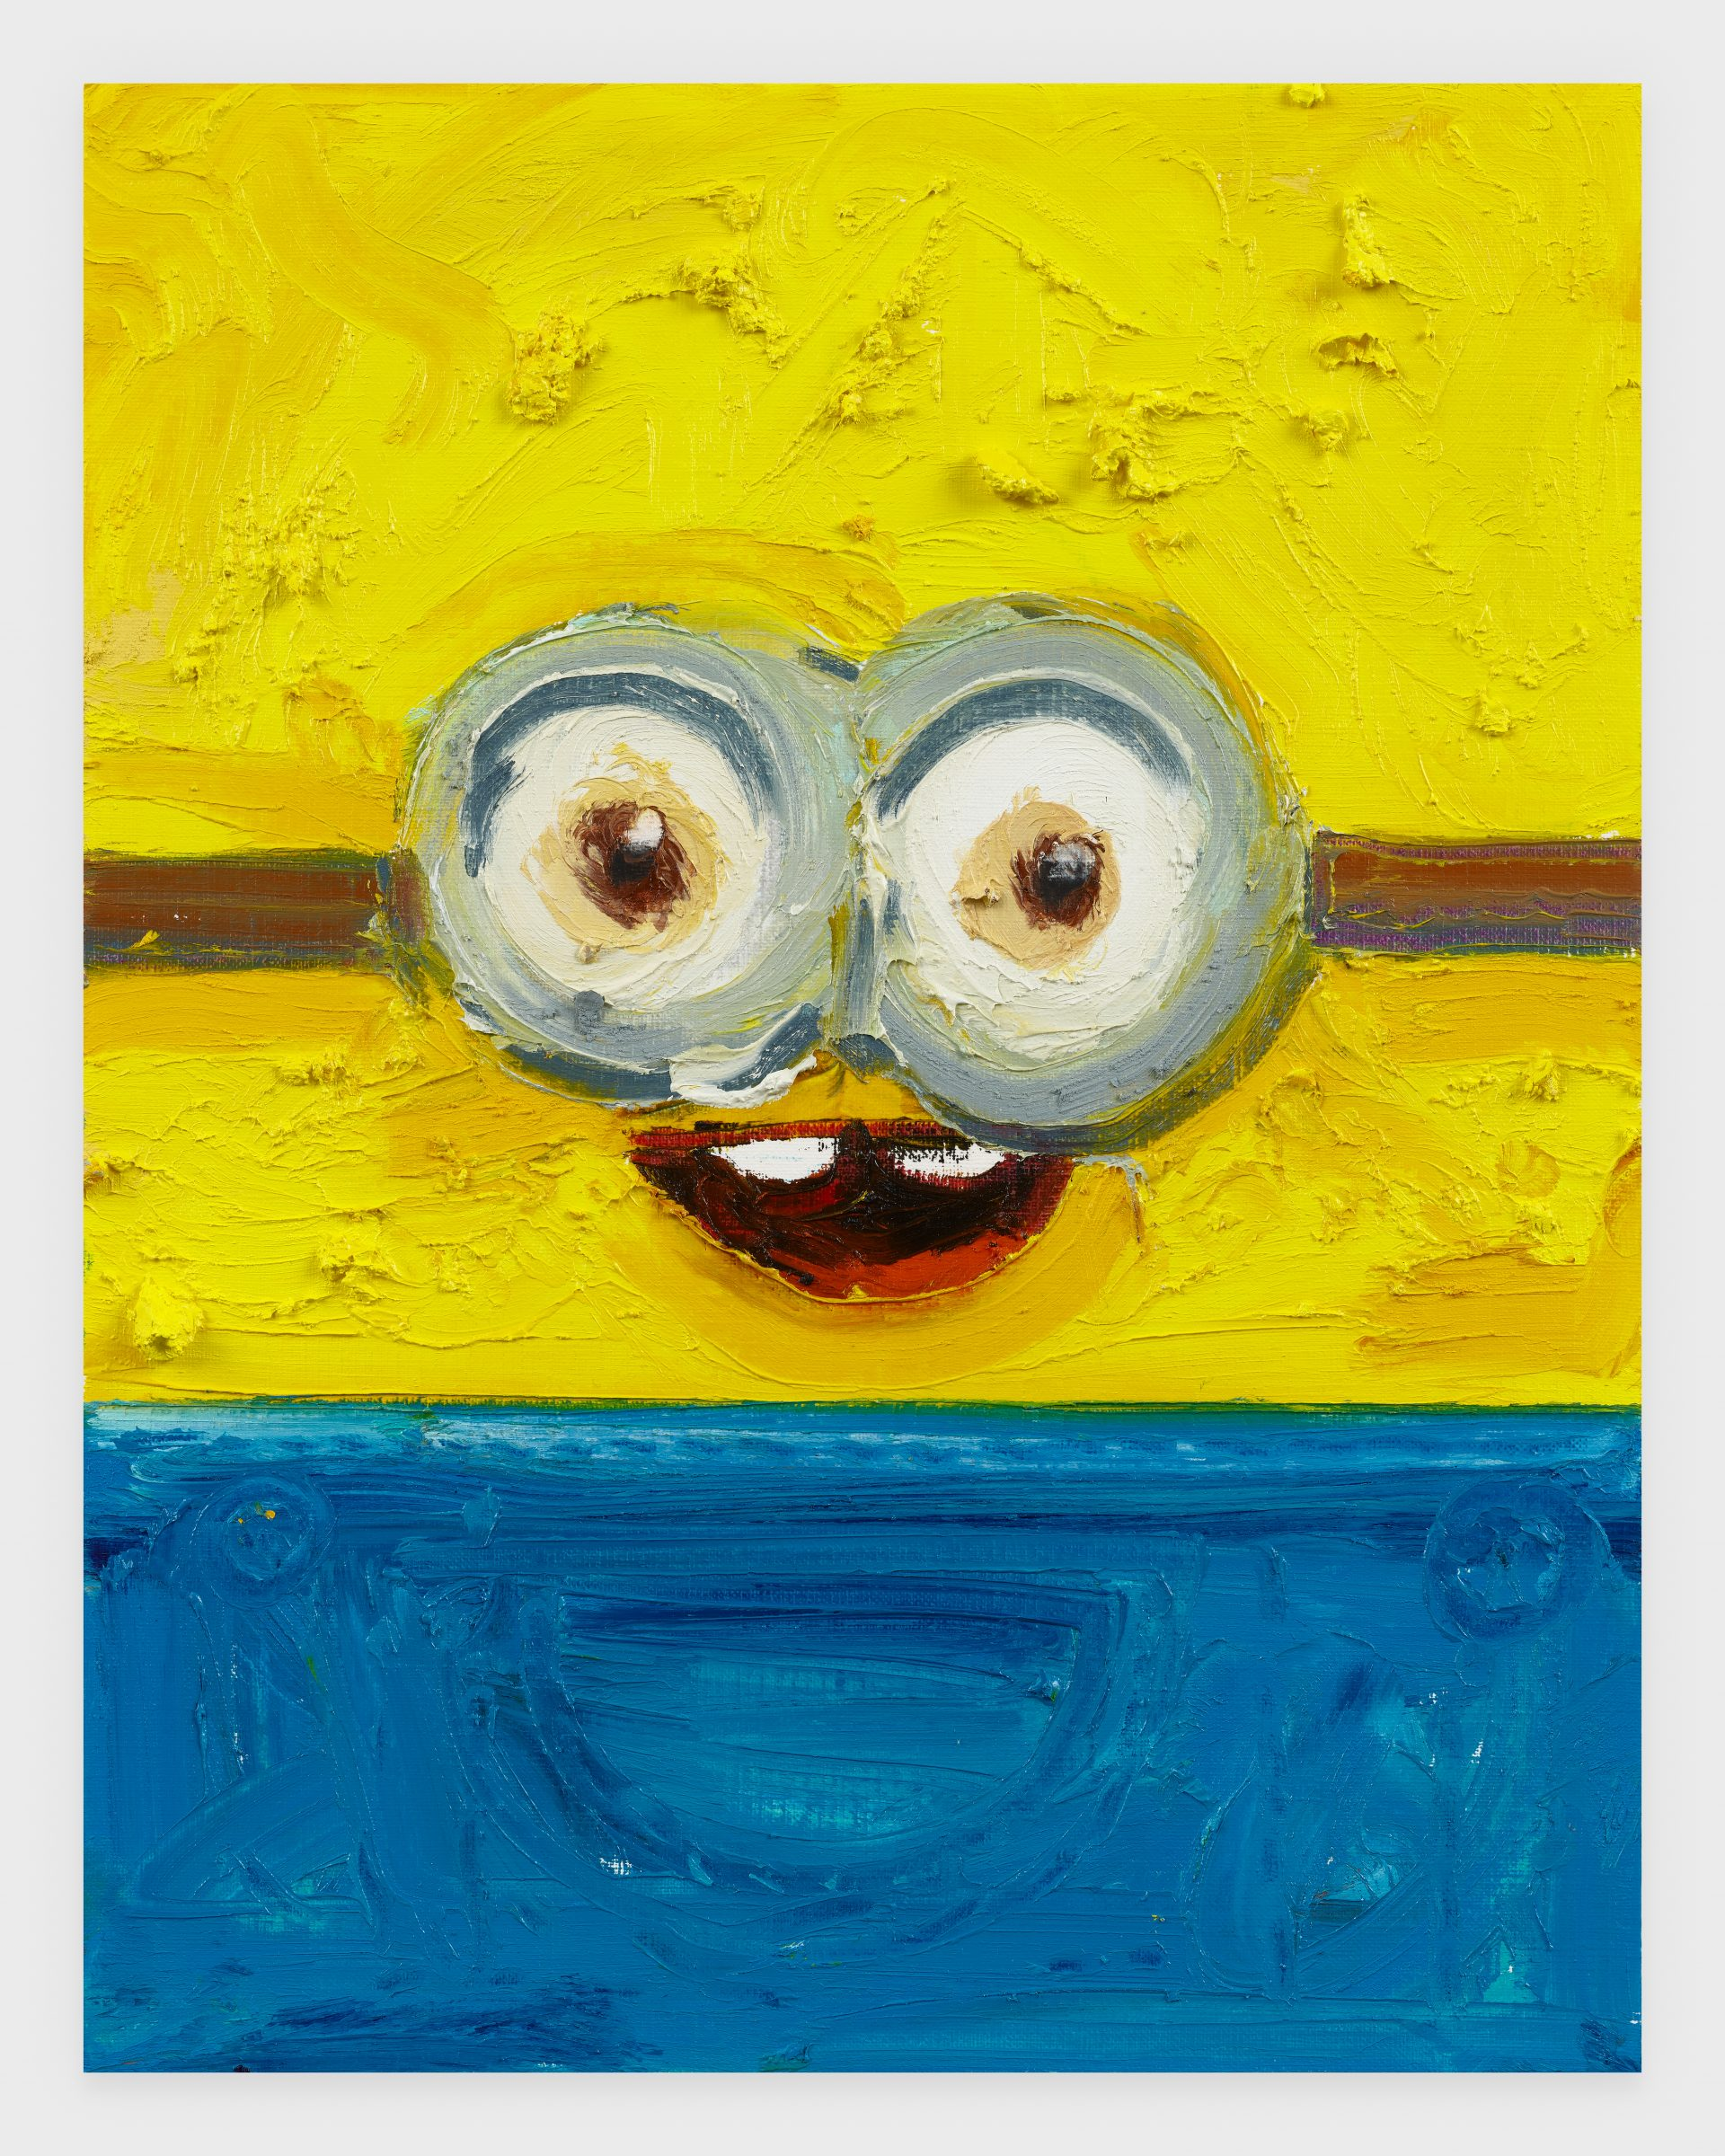 Minion, 2020, Oil stick on archival paper, 11 x 14 inches